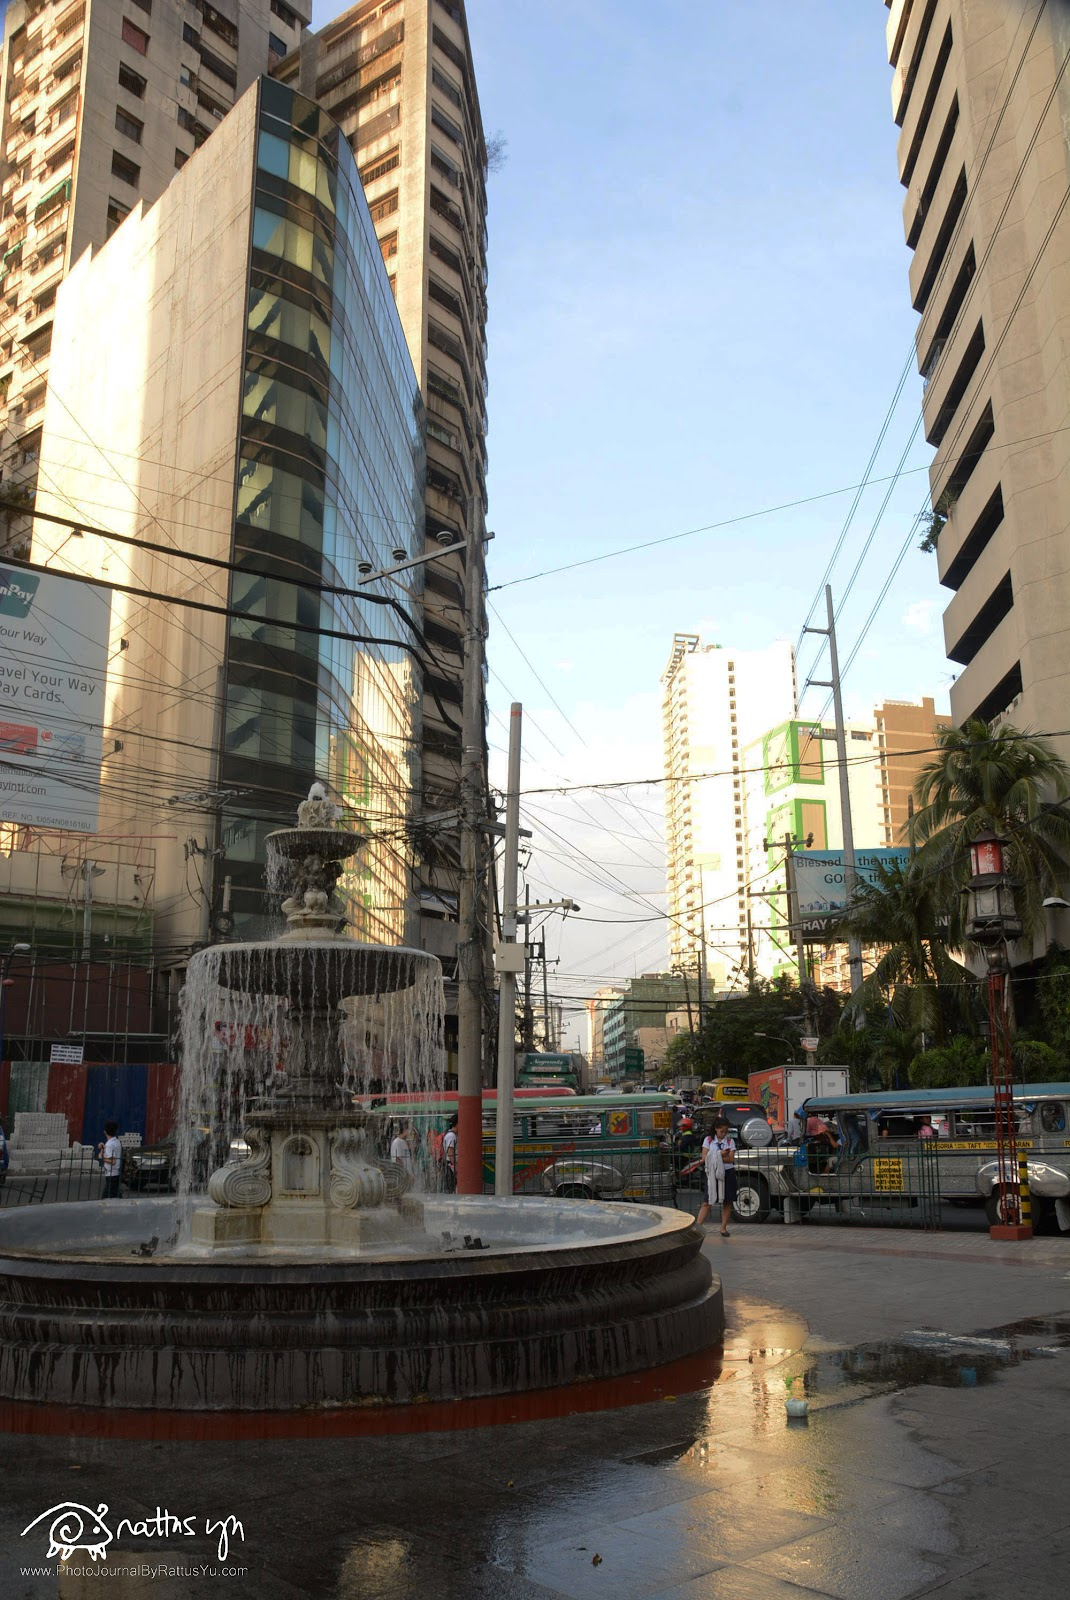 Binondo, Chinatown, Sta. Cruz, Binondo Church, business district, church, historic, heritage, old buildings